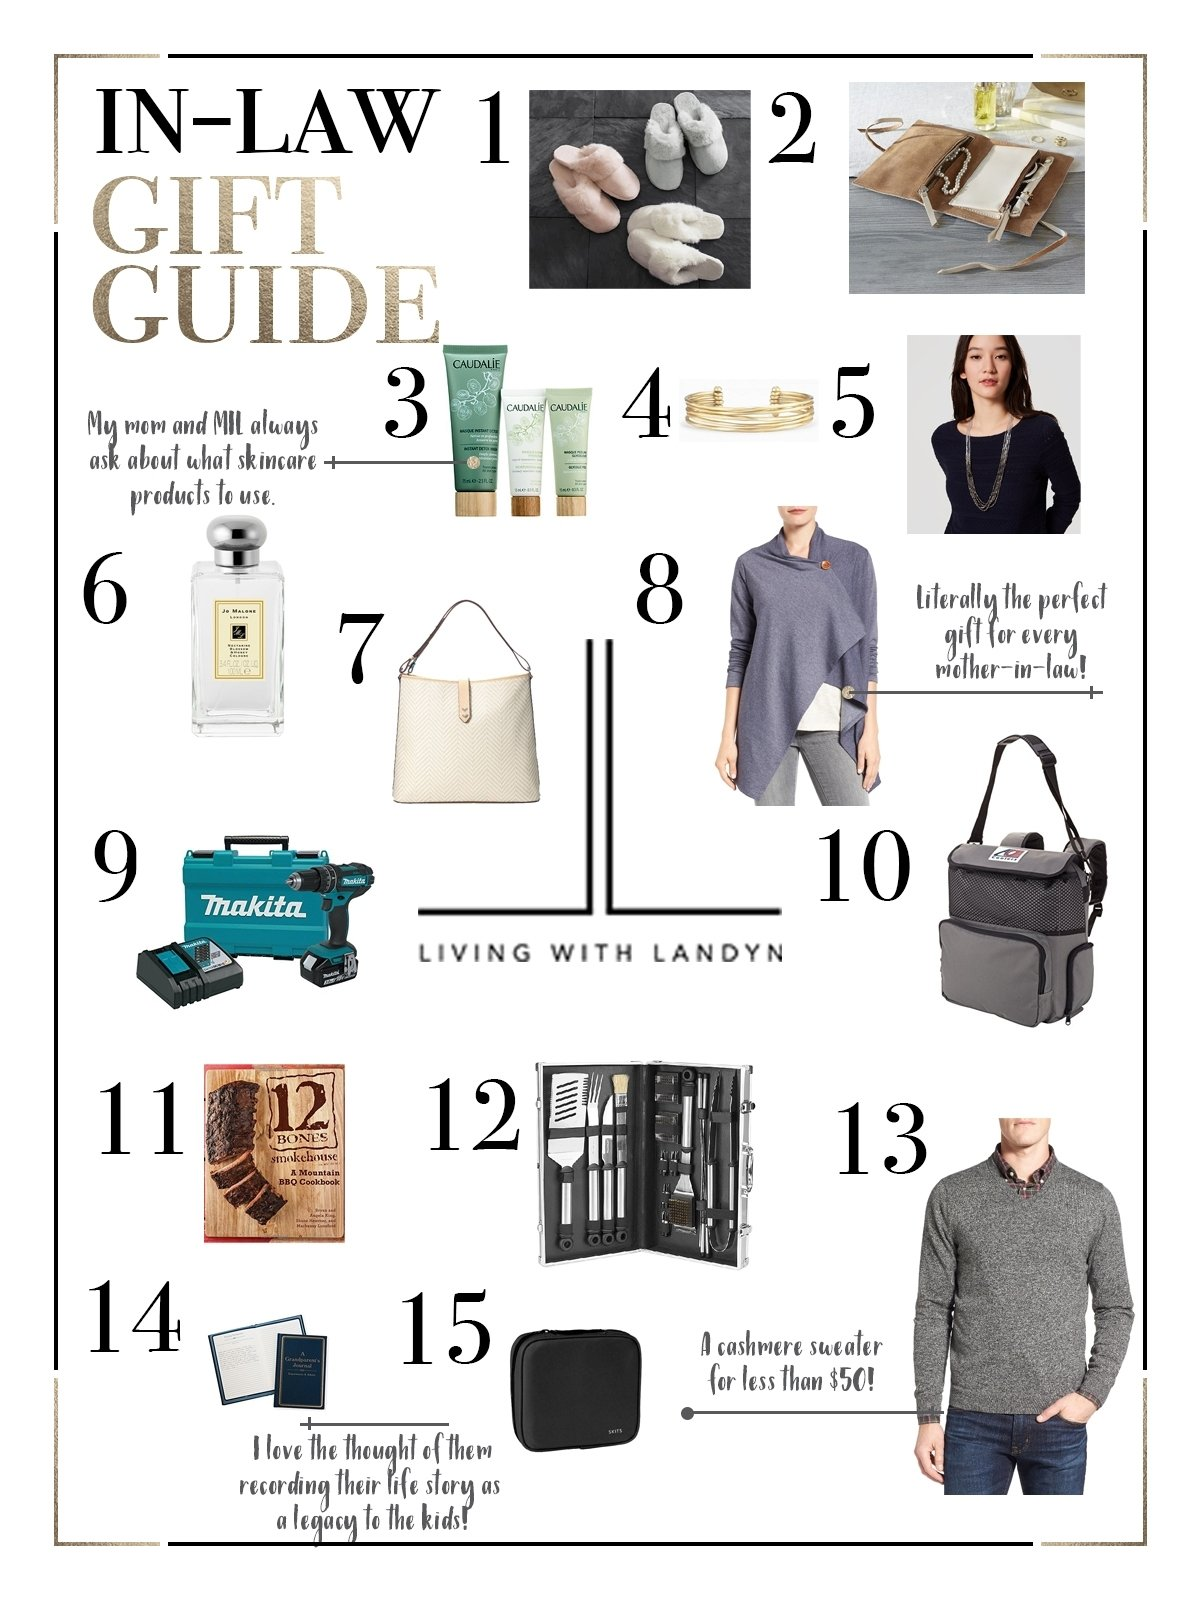 10 Ideal Christmas Gift Ideas For Inlaws if you are struggling with what to get your in laws for christmas 3 2020